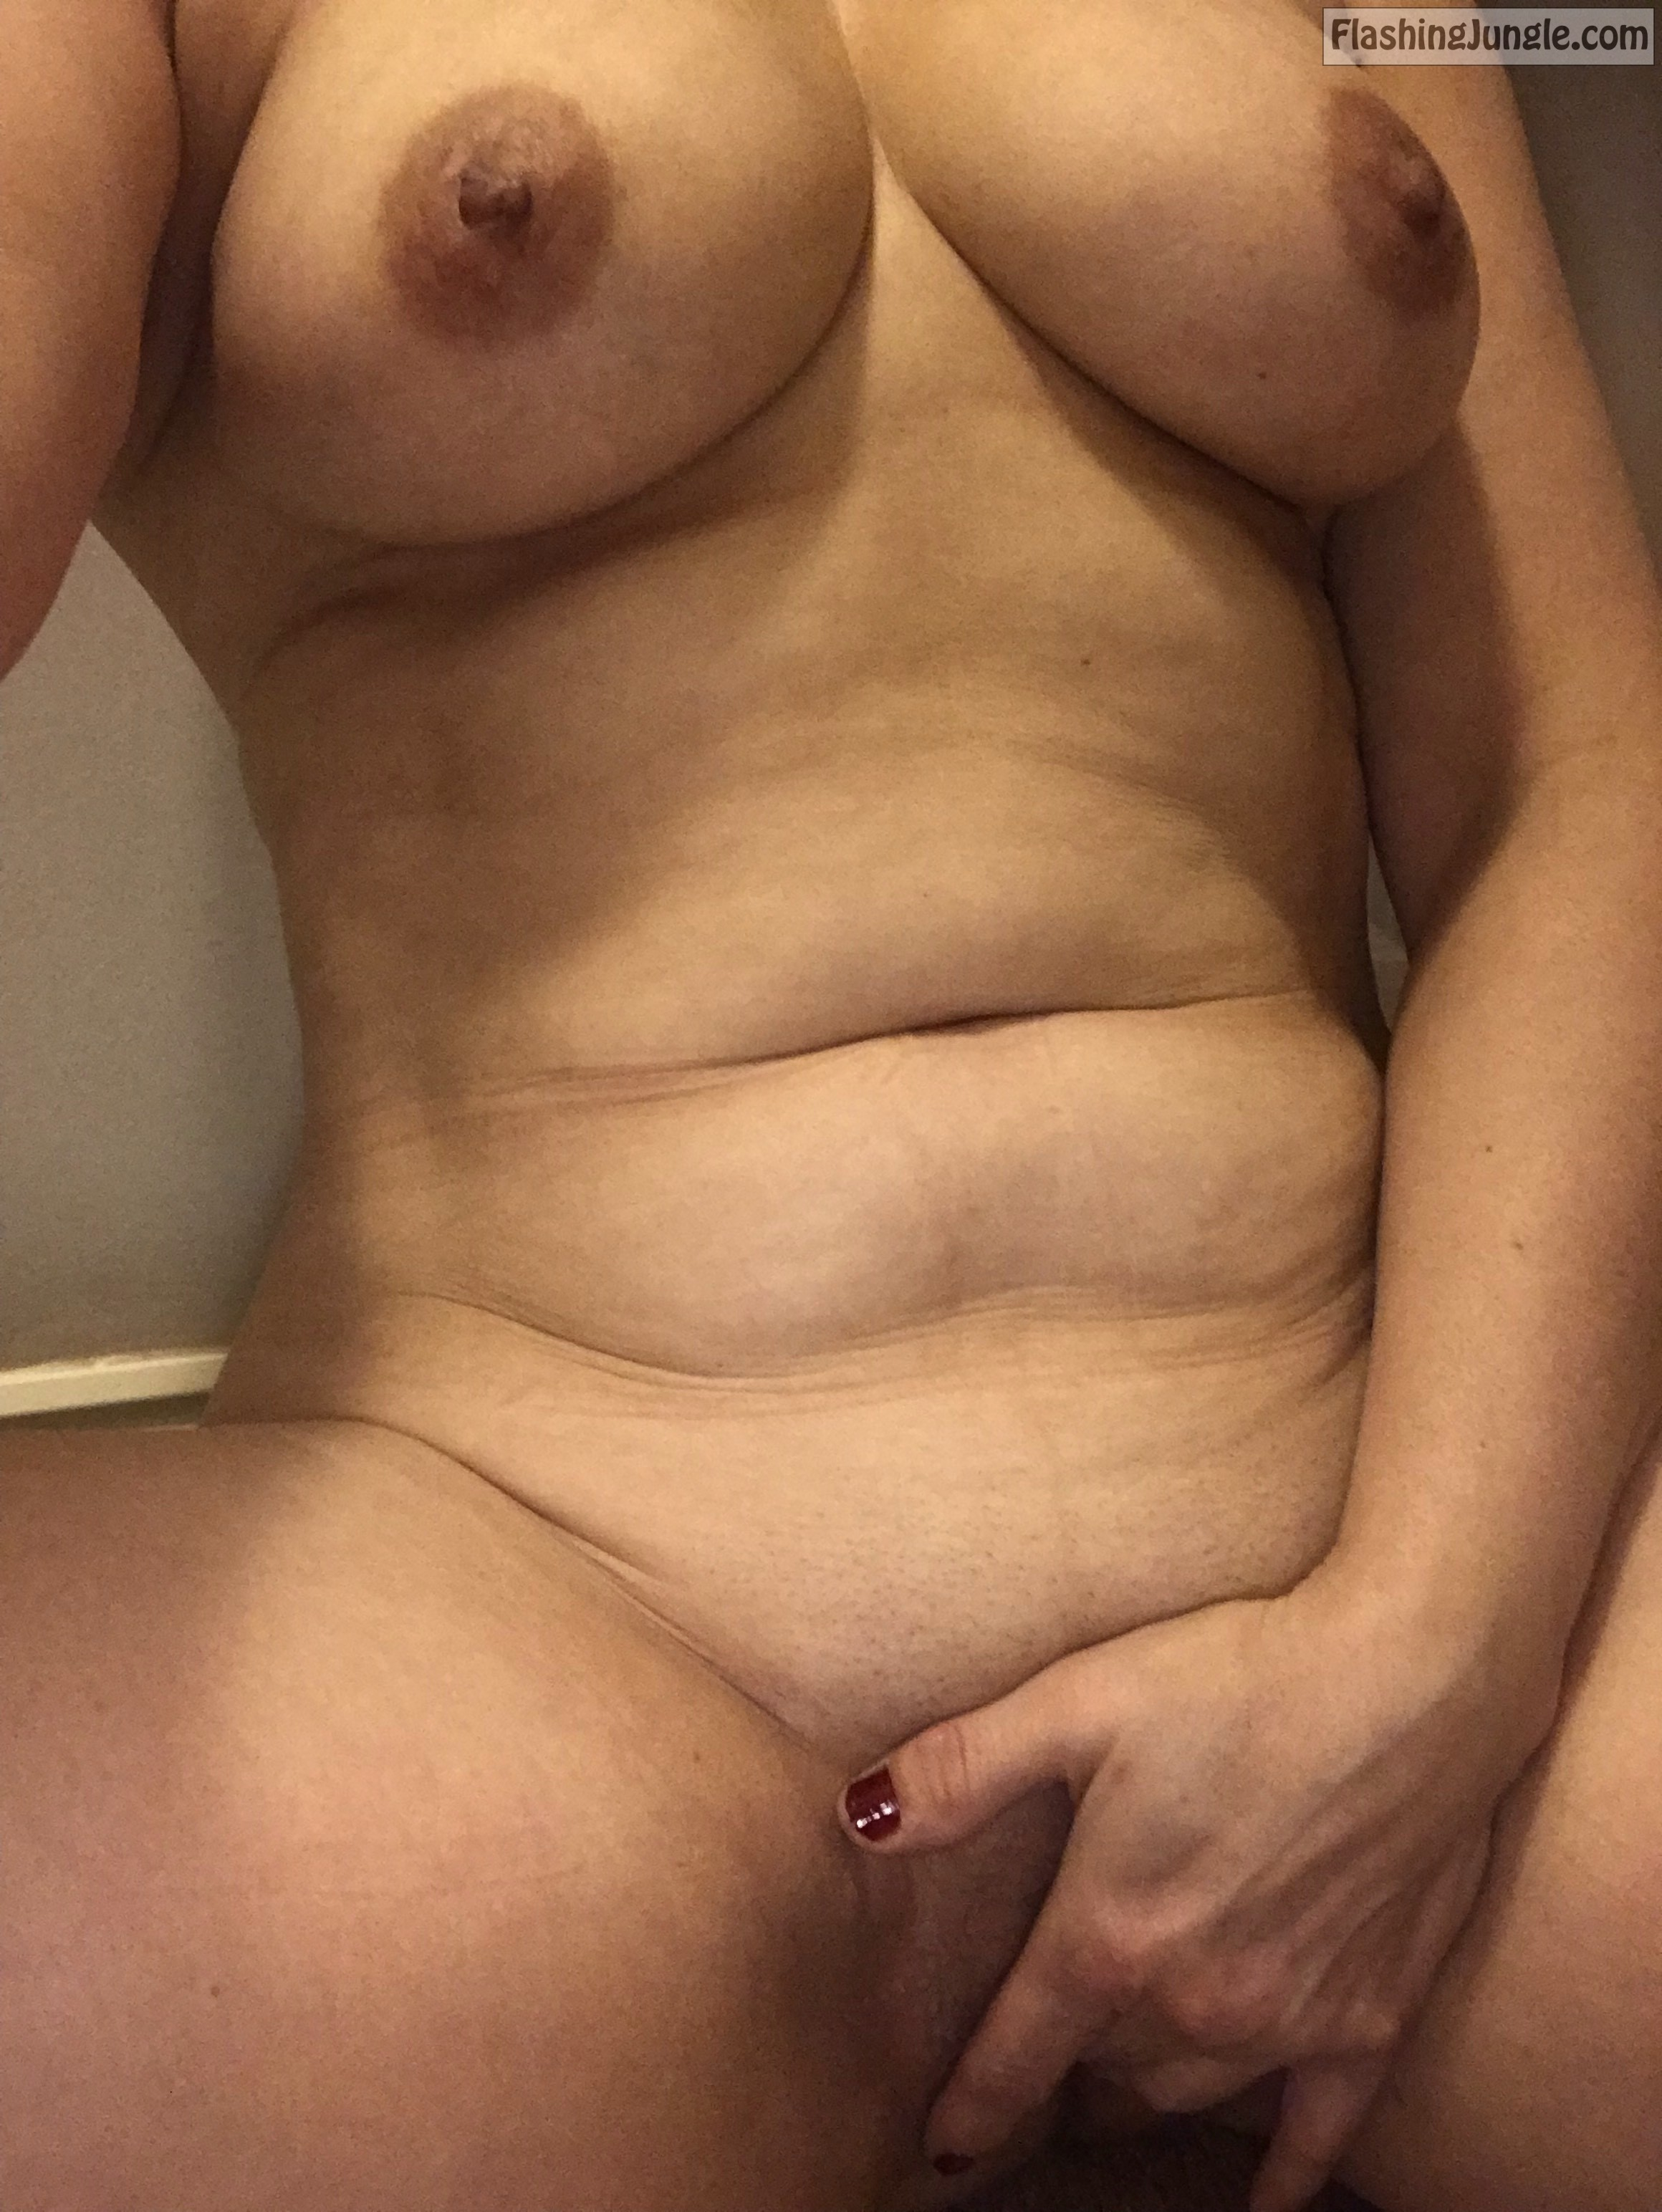 Real Nudity MILF Flashing Pics Hotwife Pics Bitch Flashing Pics